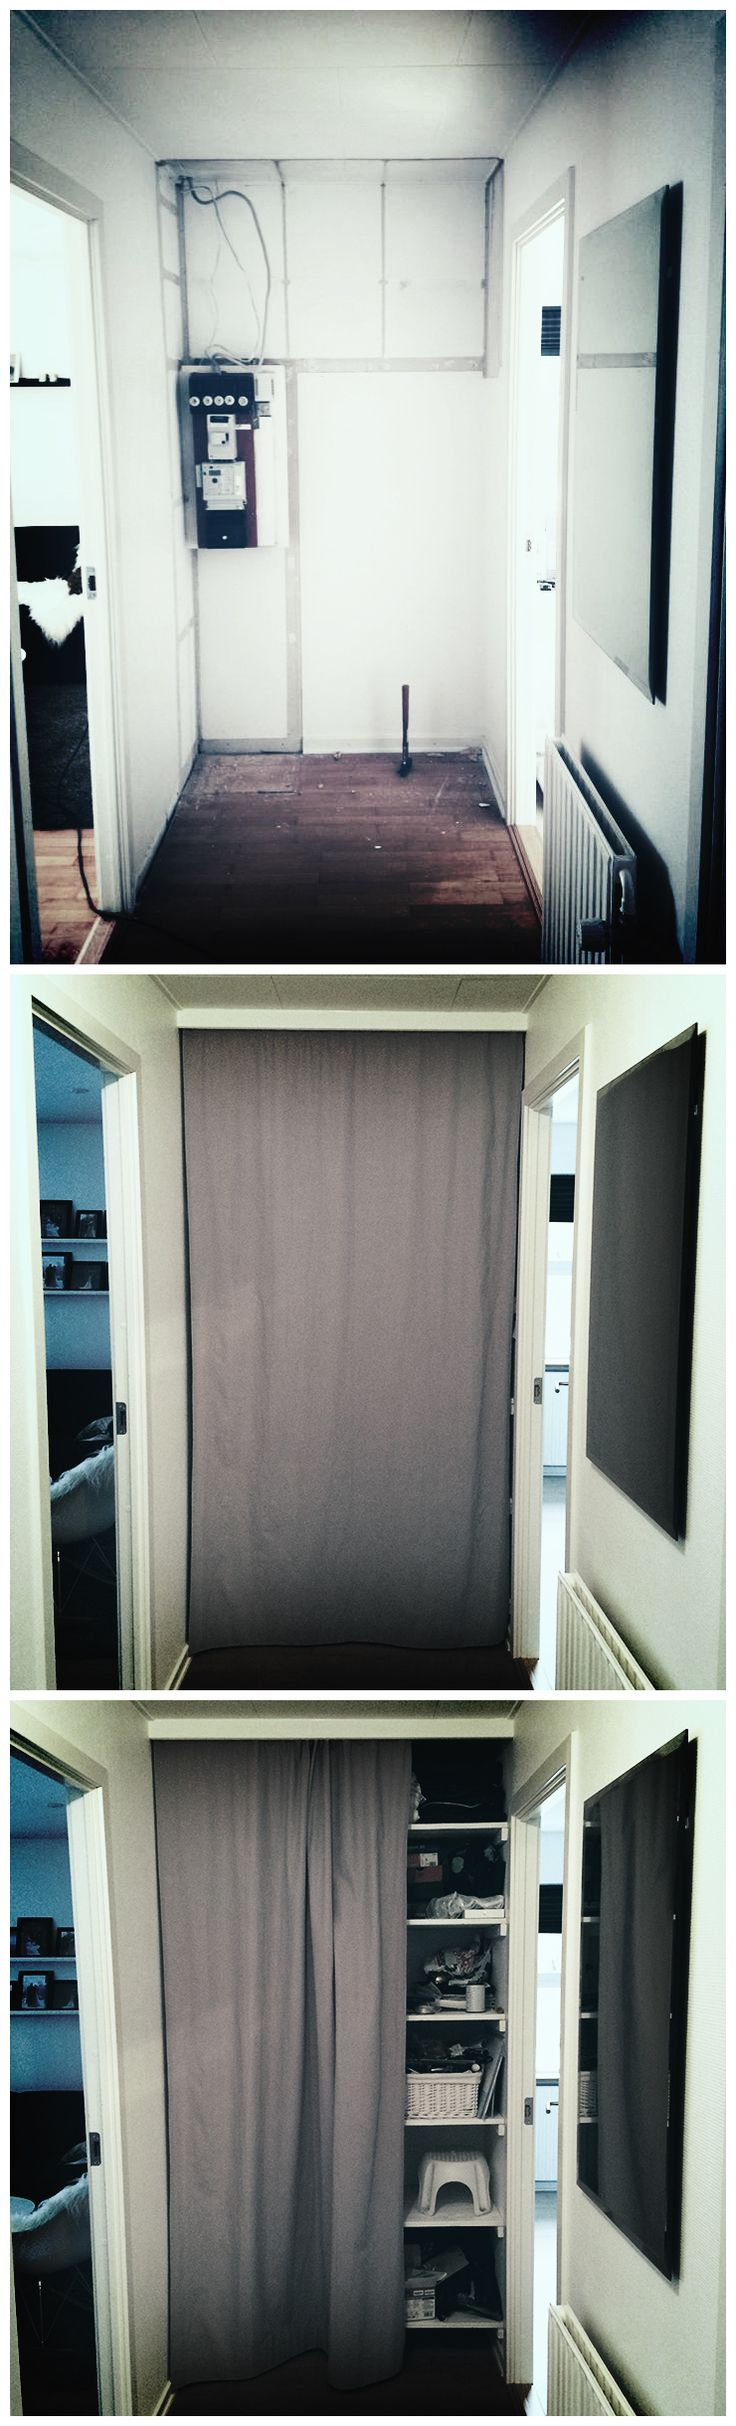 I removed the original storage capabilities to make better use of the space. Instead I choose to install homemade shelves. The shelves is made from cheap wood (painted white) available in any DIY store. The great thing is that you can hide the shelves with any kind of fabric ;) Lastly, the curtain rud is available in Ikea, just look for Kvartal.